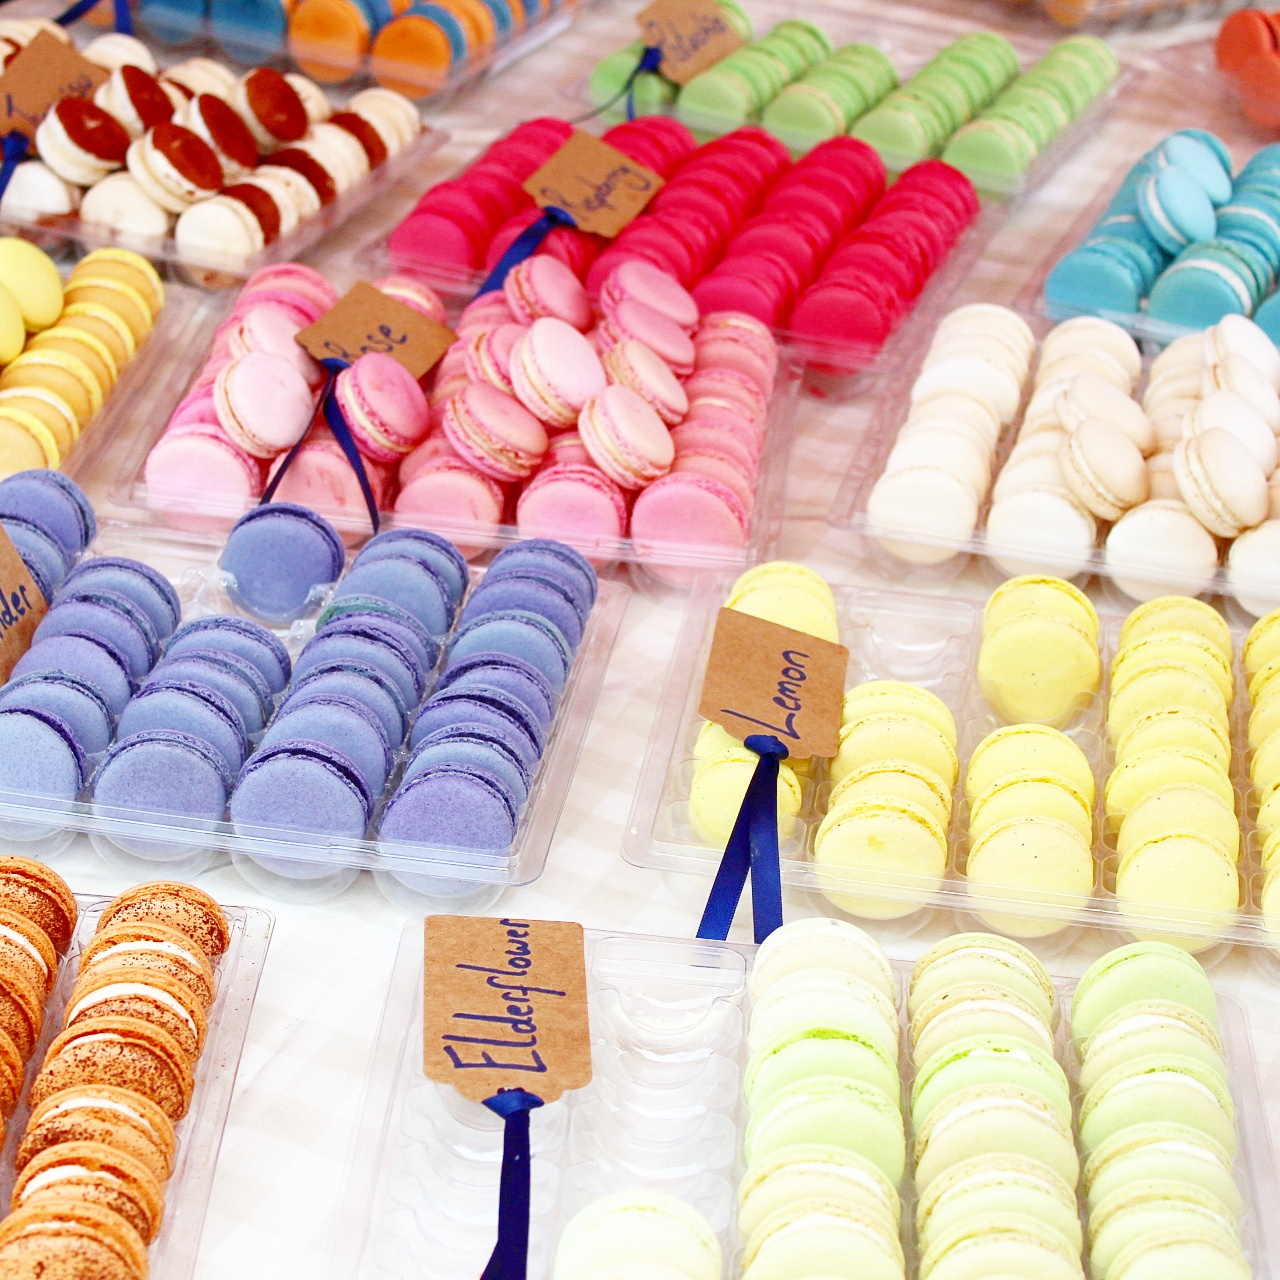 Edinburgh Foodie Festival with Mademoiselle Macaron